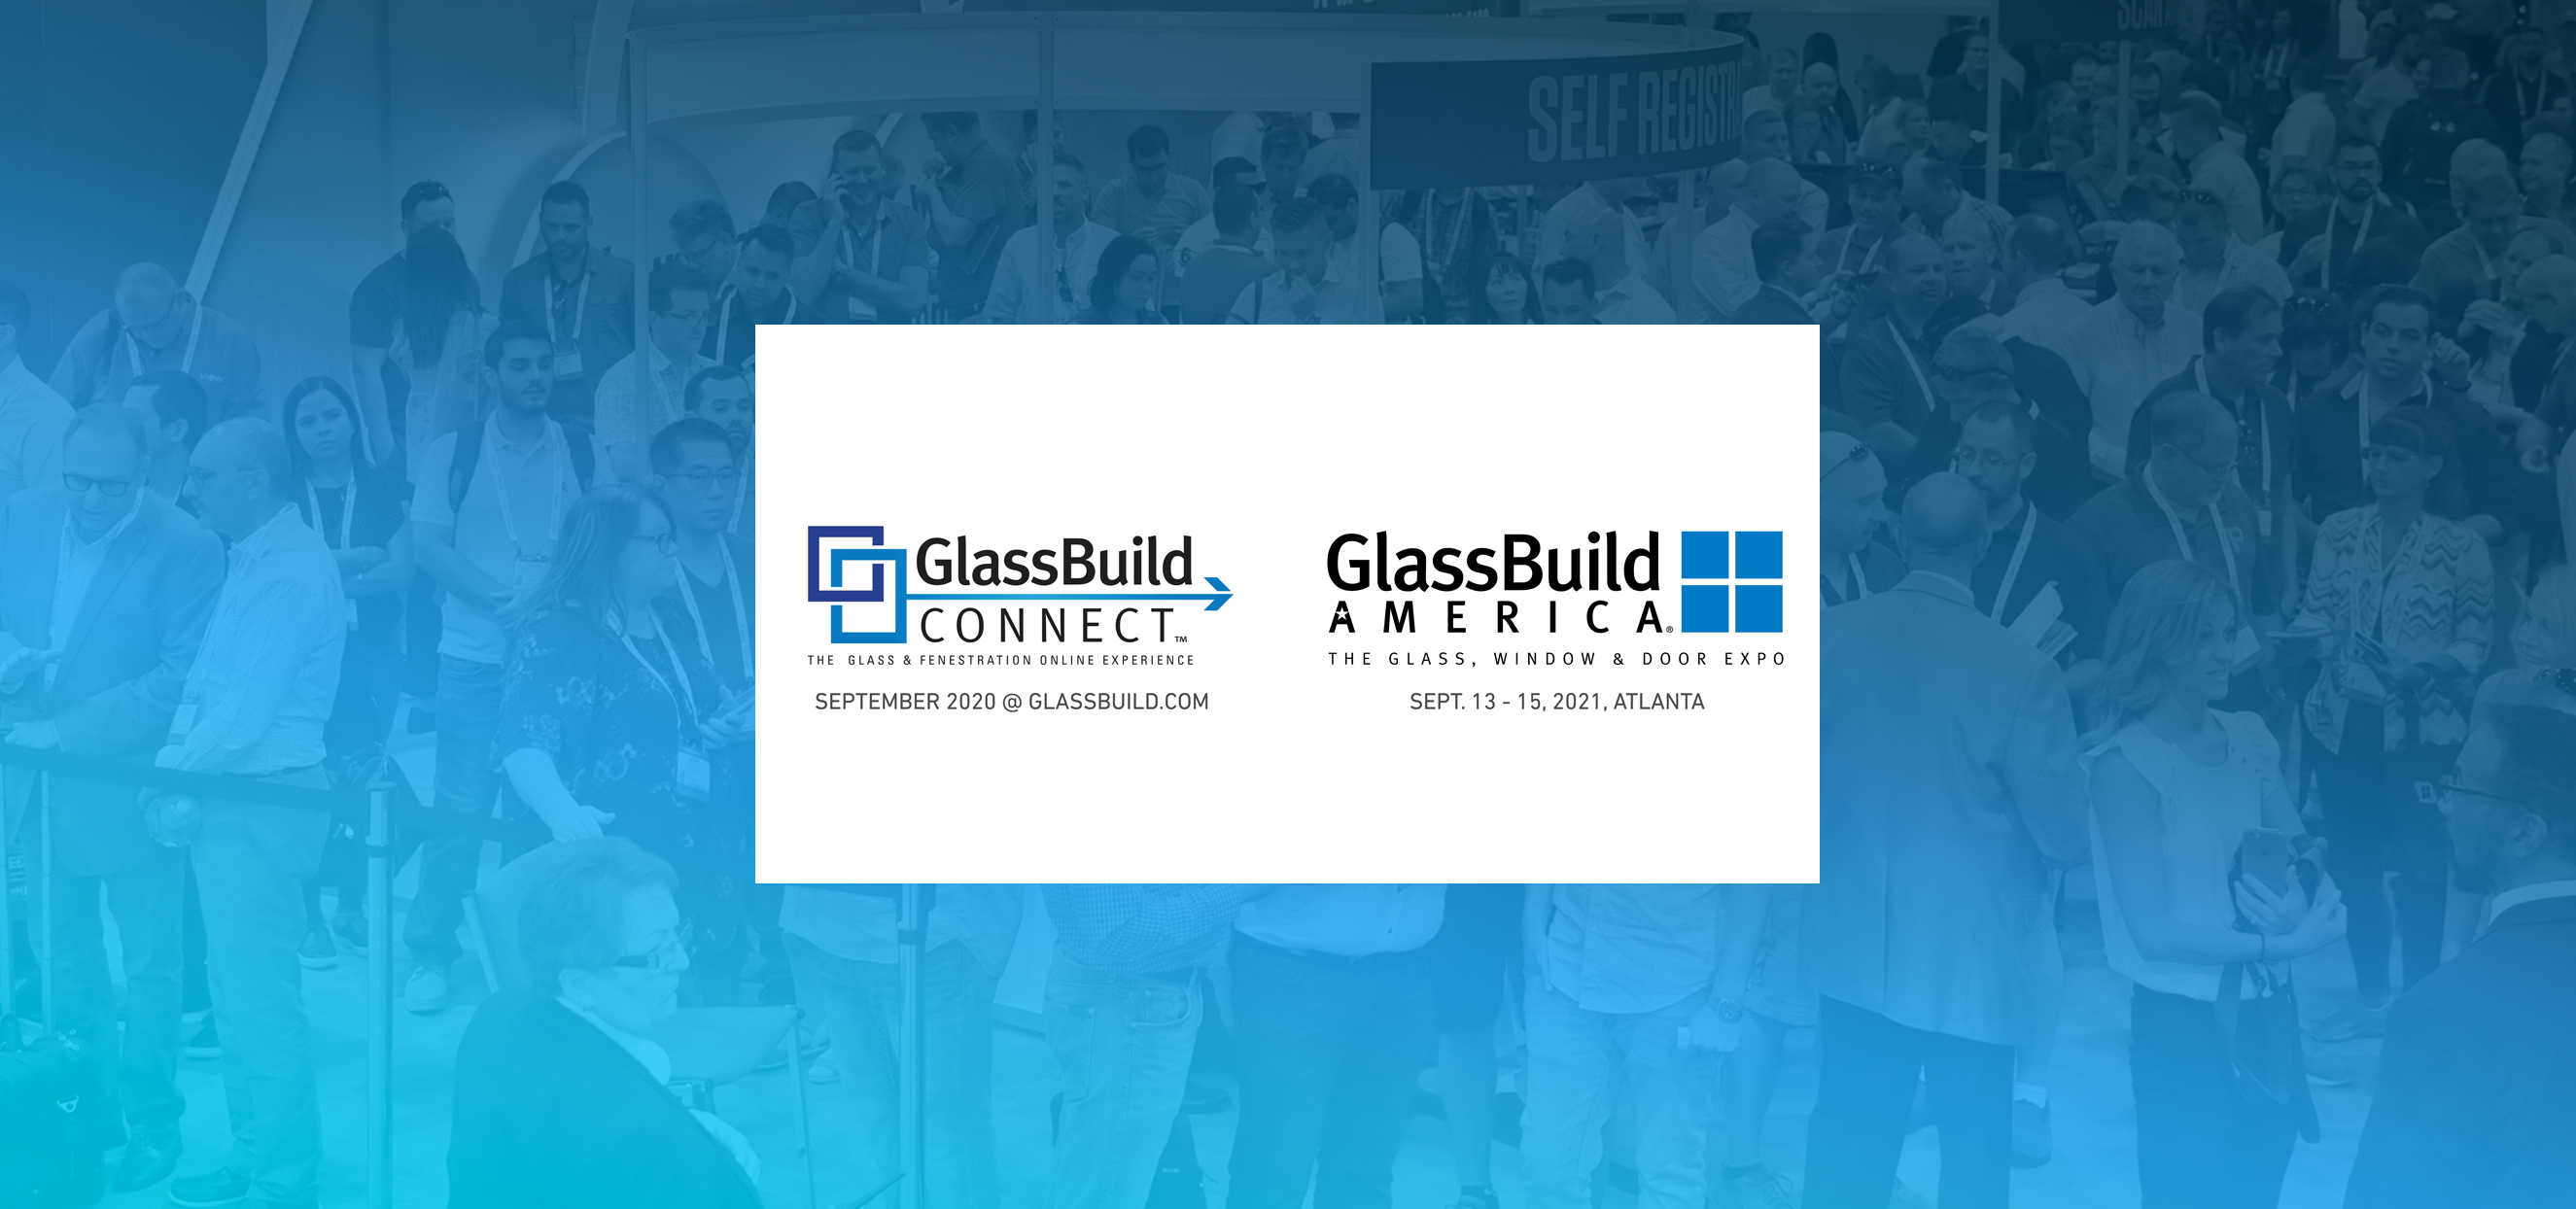 National Glass Association Announces Cancellation of GlassBuild America 2020